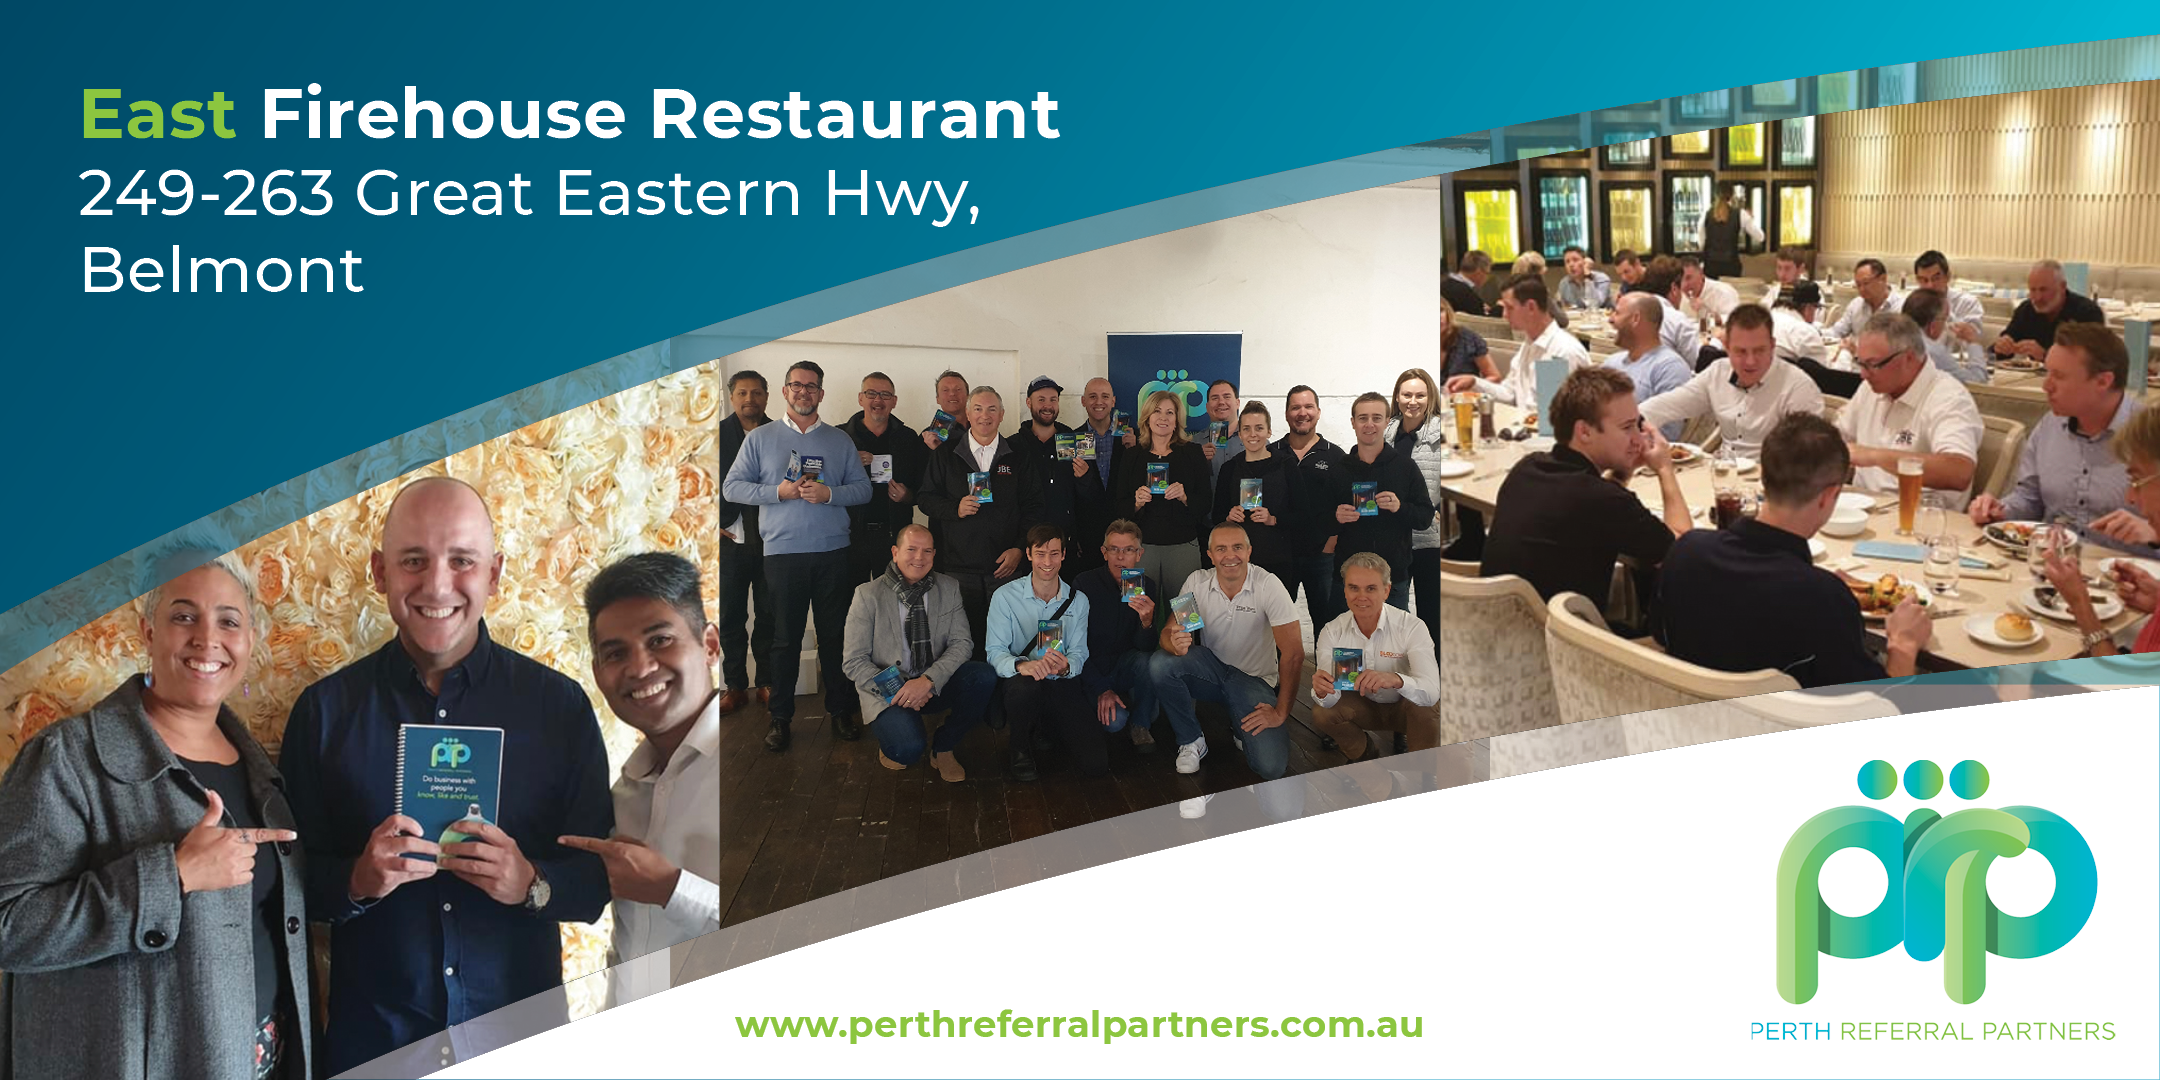 Perth Referral Partners